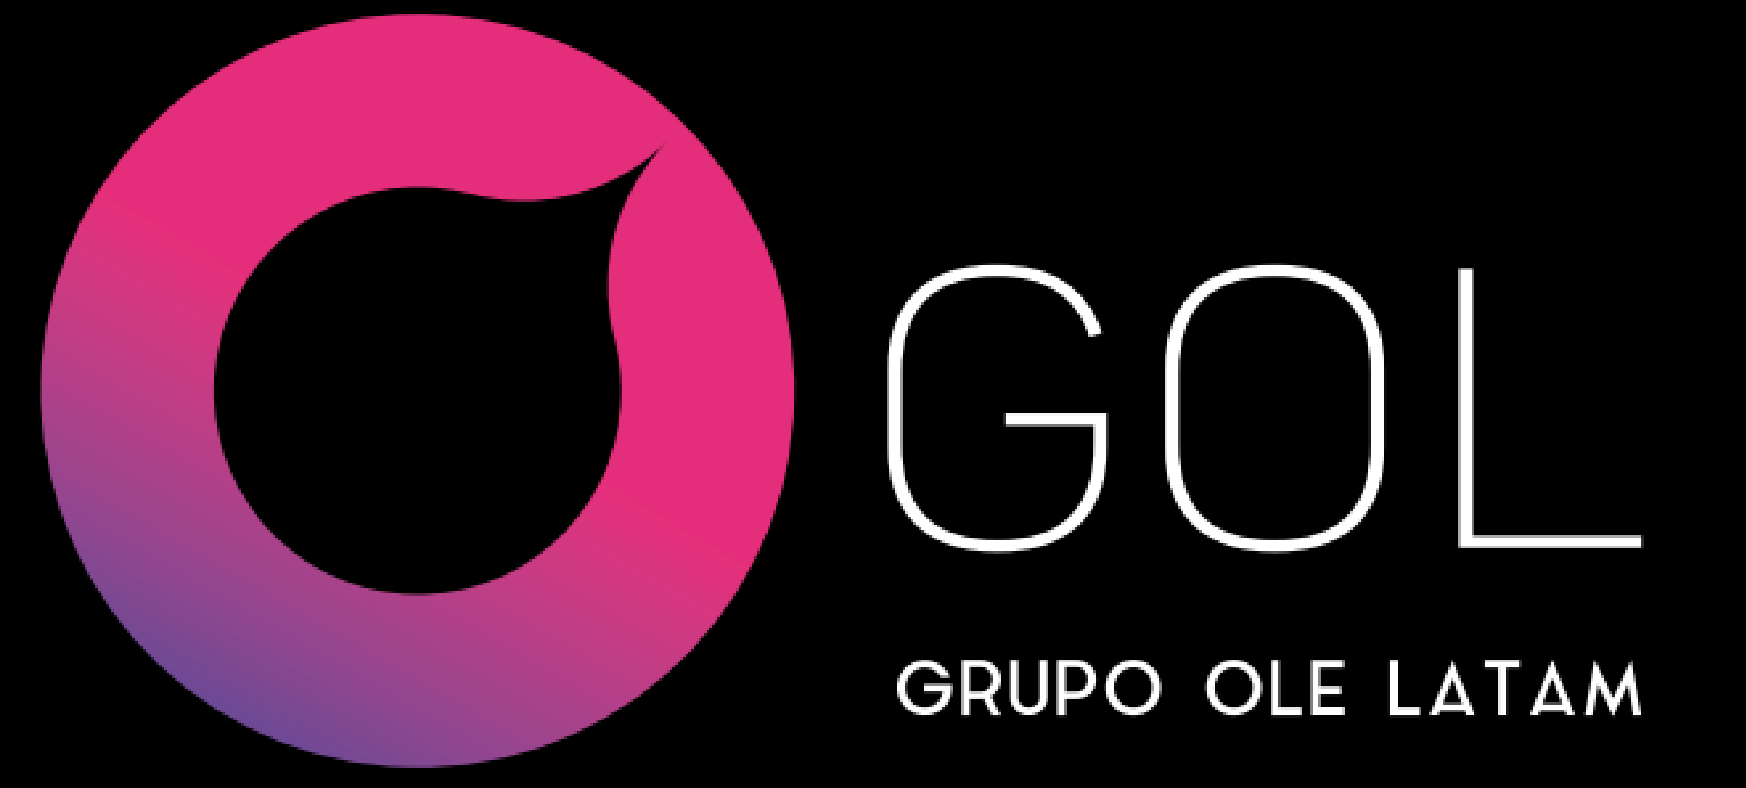 GRUPO OLE LATAM - BTL Y EVENTOS - TRADE MARKETING